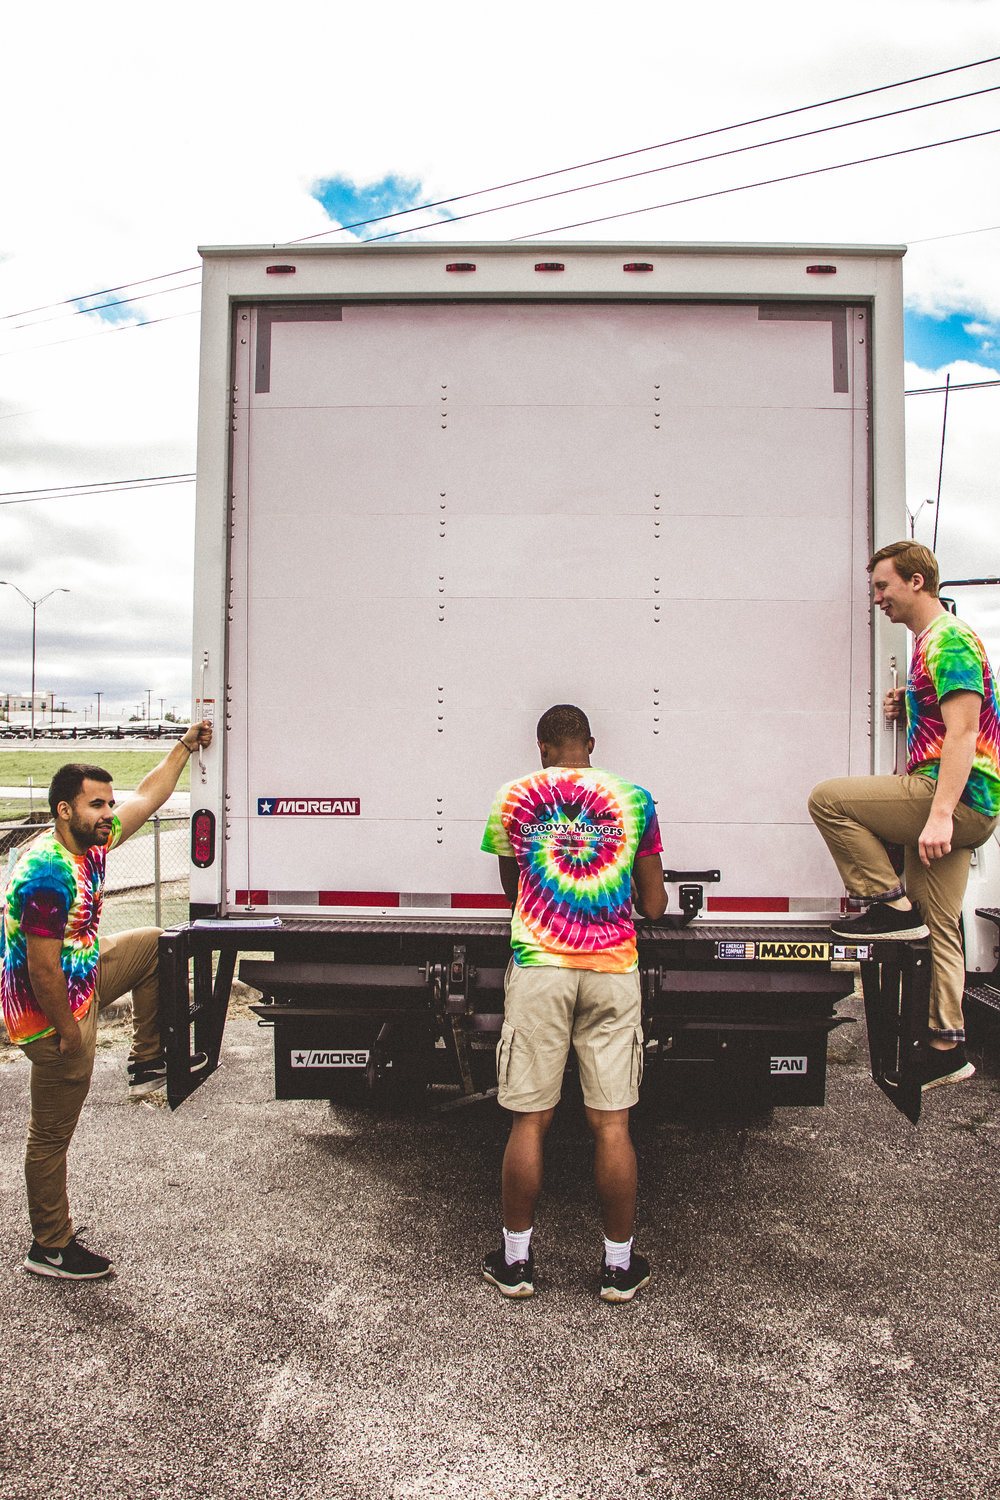 moving movers austin texas road trip groovy movers.jpg